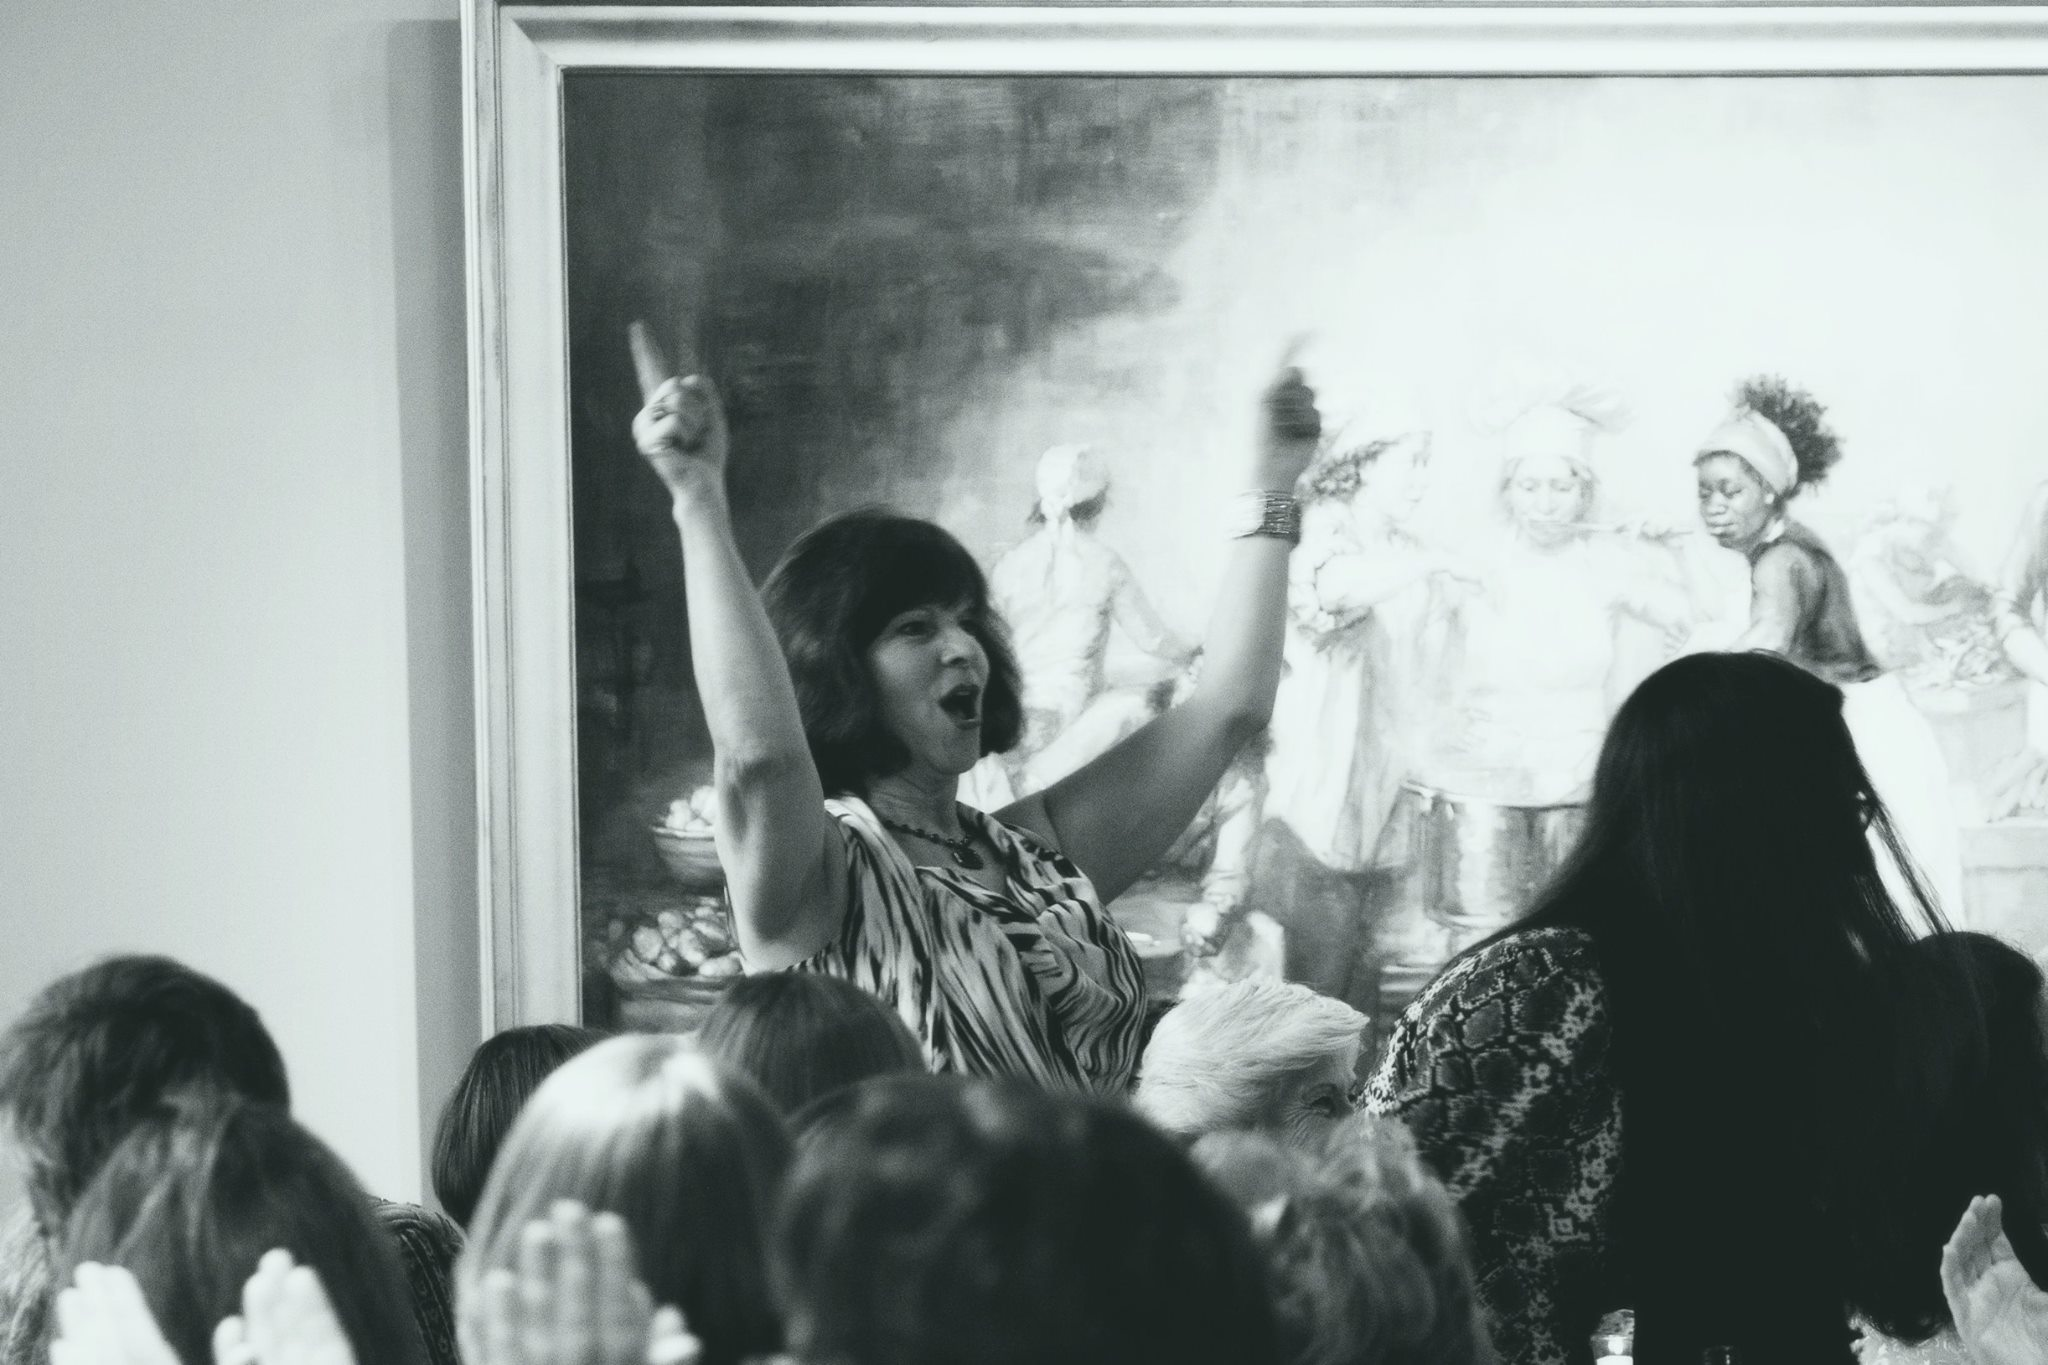 The ever glorious Lisa Helmholz-Adams, standing and addressing the crowd before the painting The Feast of Venus by Elizabeth Torak. Lisa raised an army of women to help fight Hunger in Vermont. She's just about to launch her third event this month on May 30th in Manchester, Vermont.